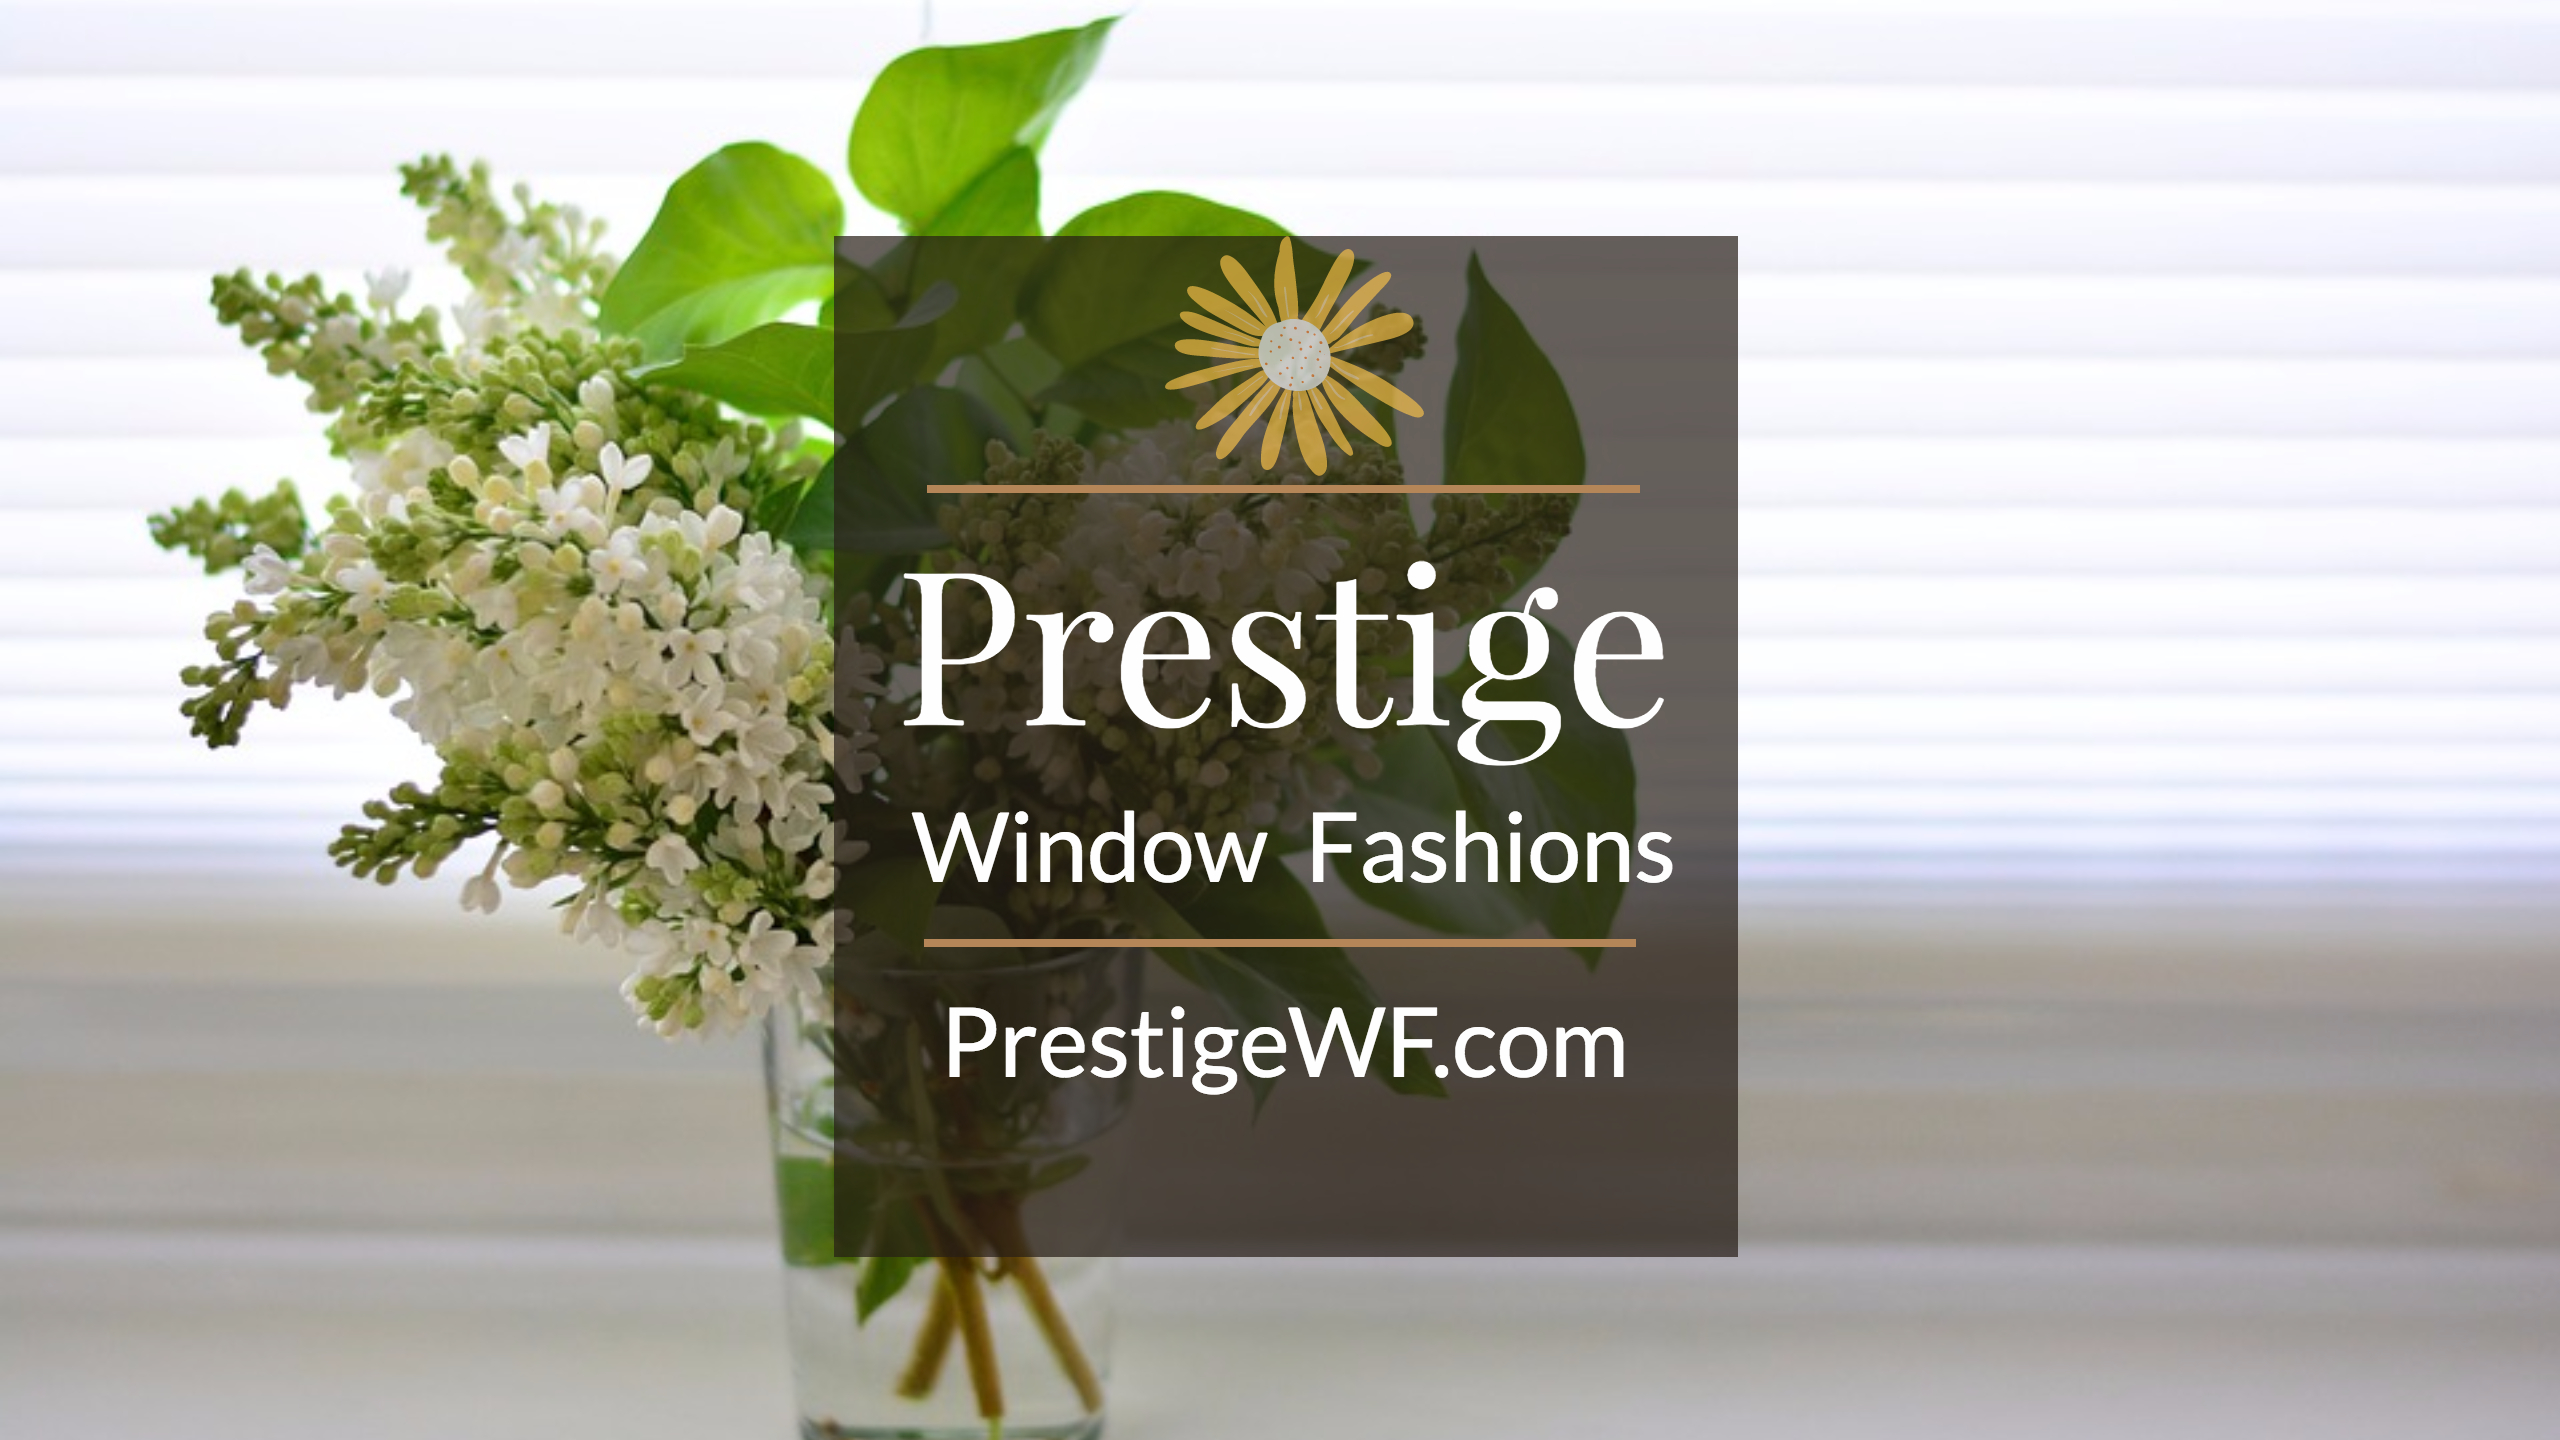 Prestige Window Fashions